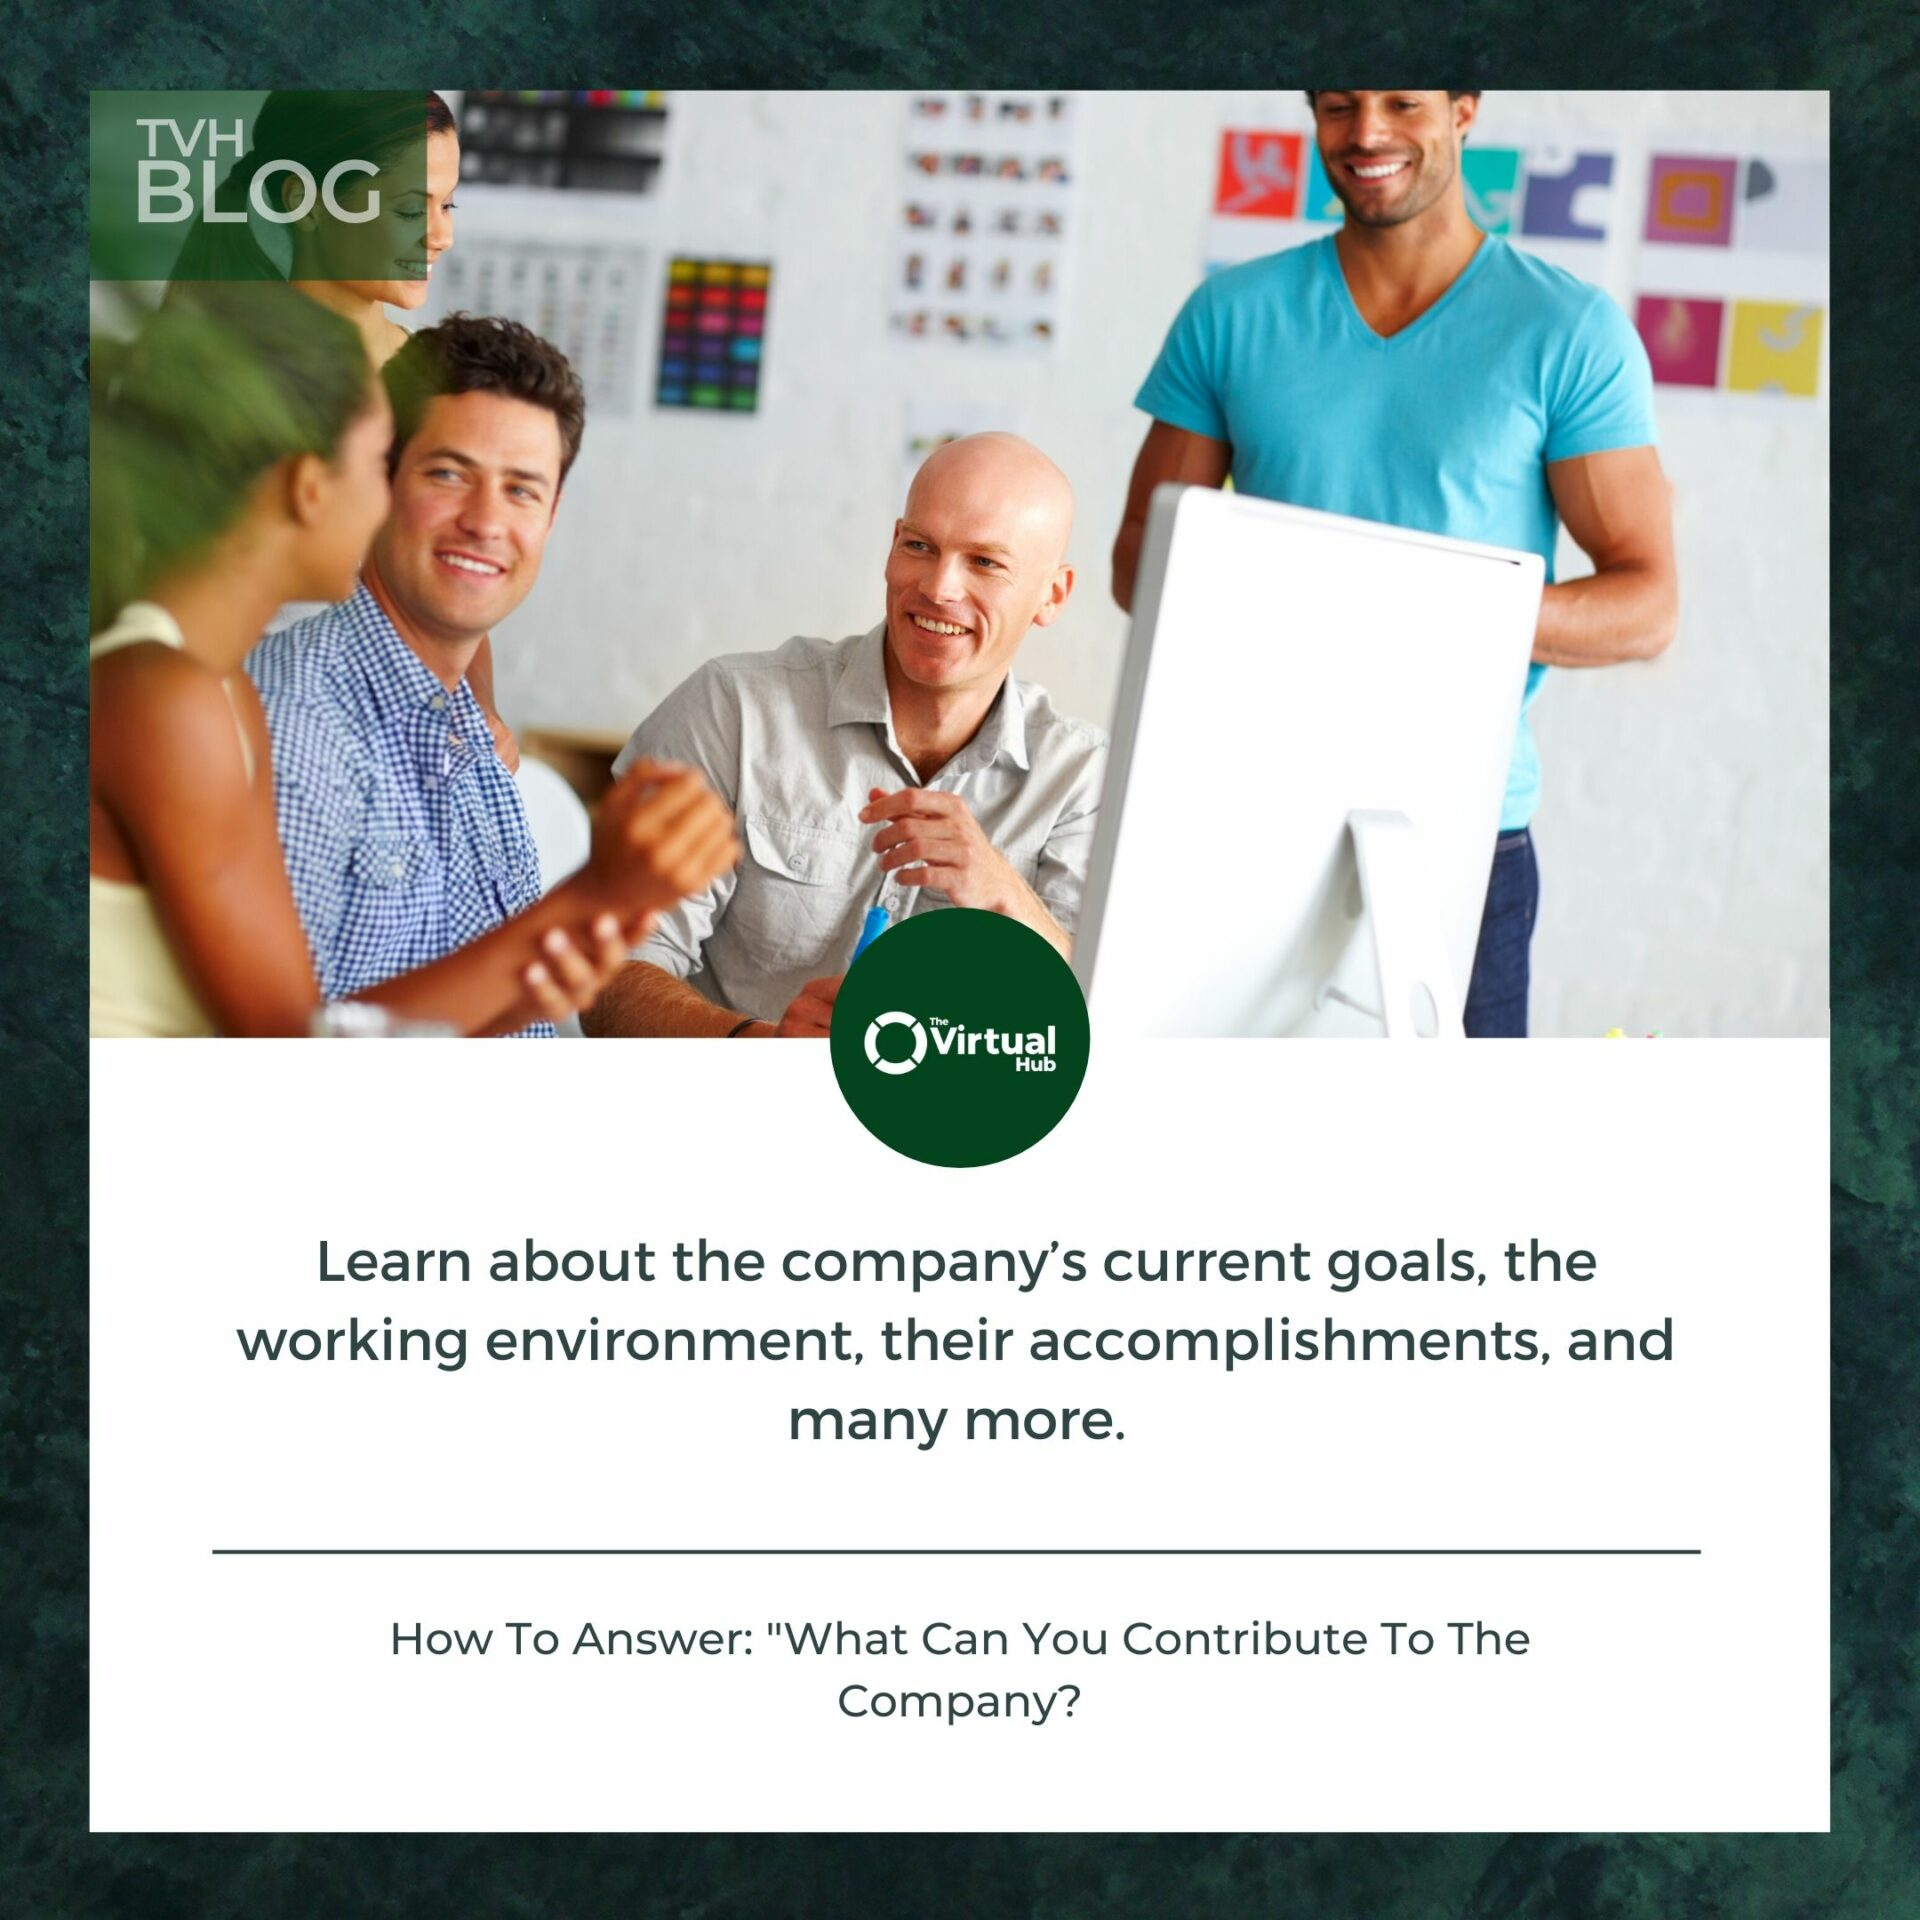 what can you contribute to the company